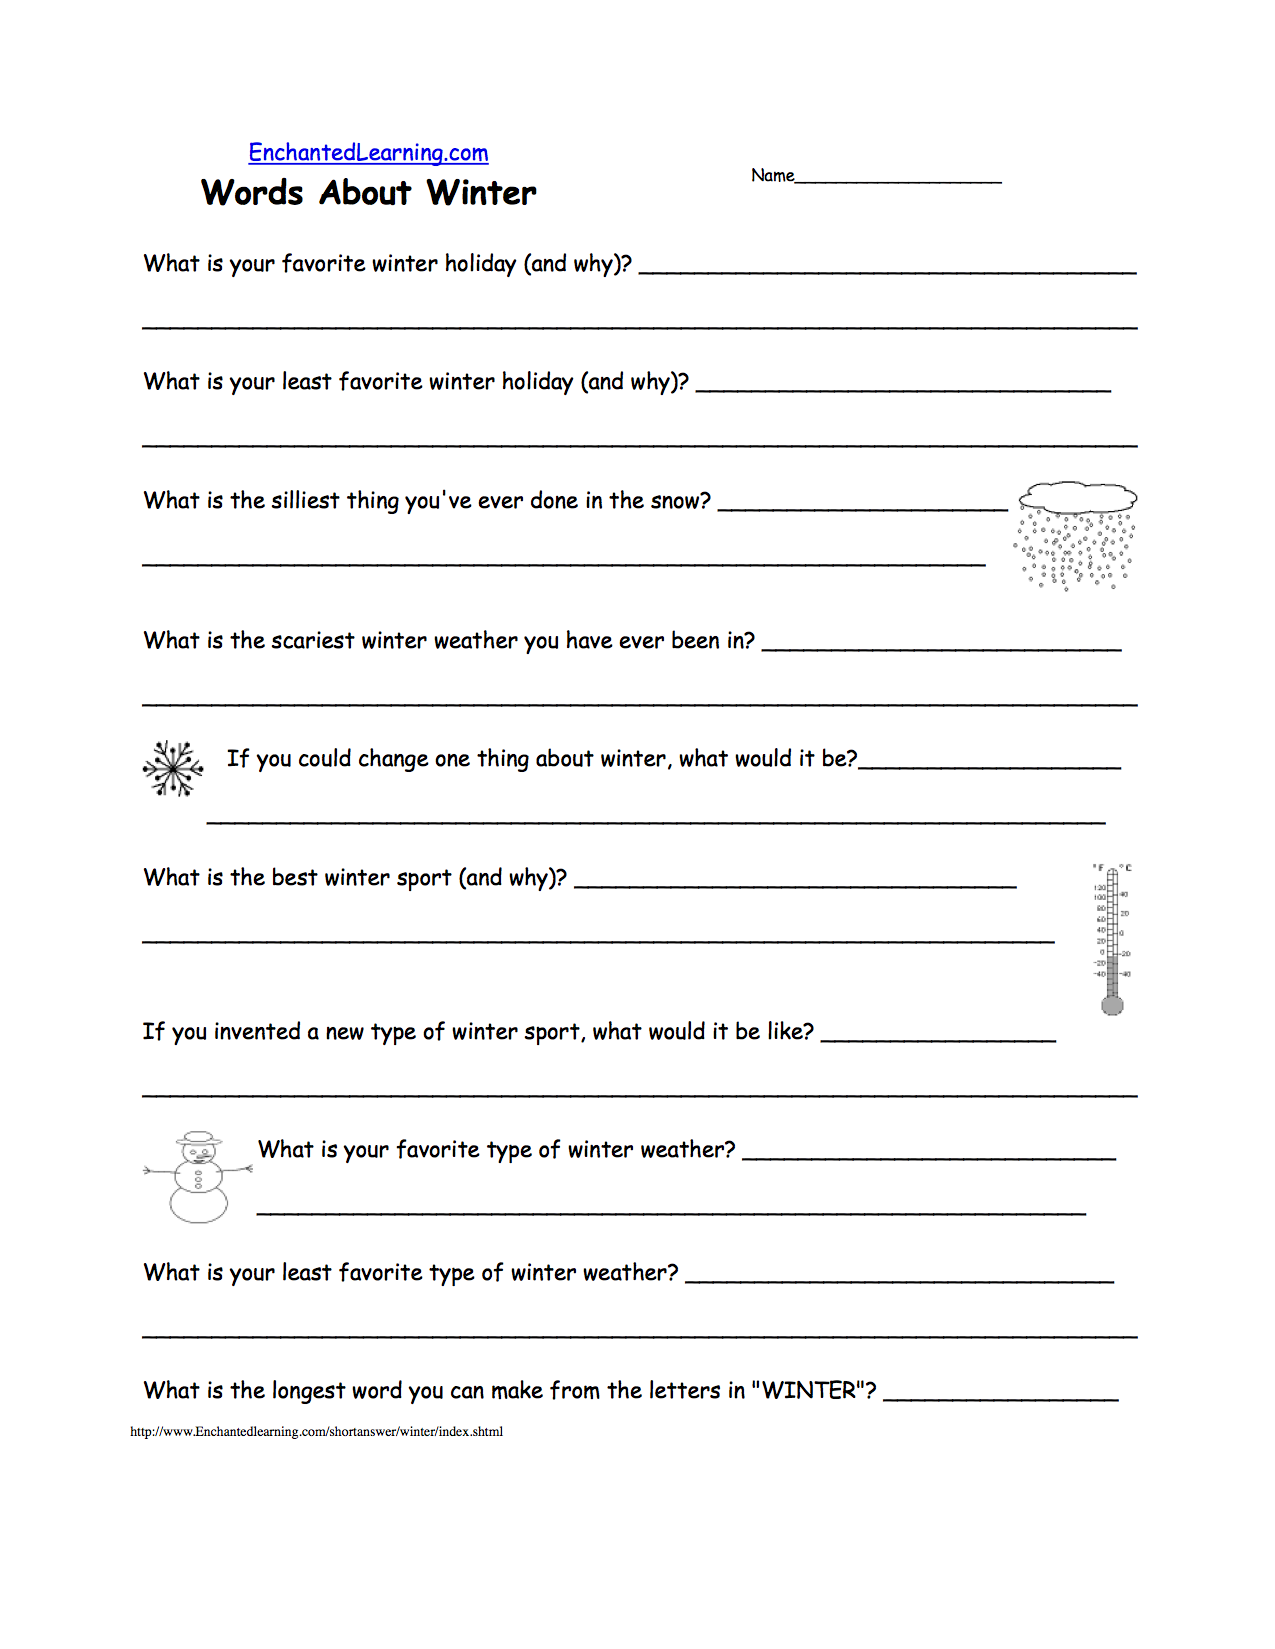 Writing Worksheets: Winter K-3 Theme Page at EnchantedLearning.com